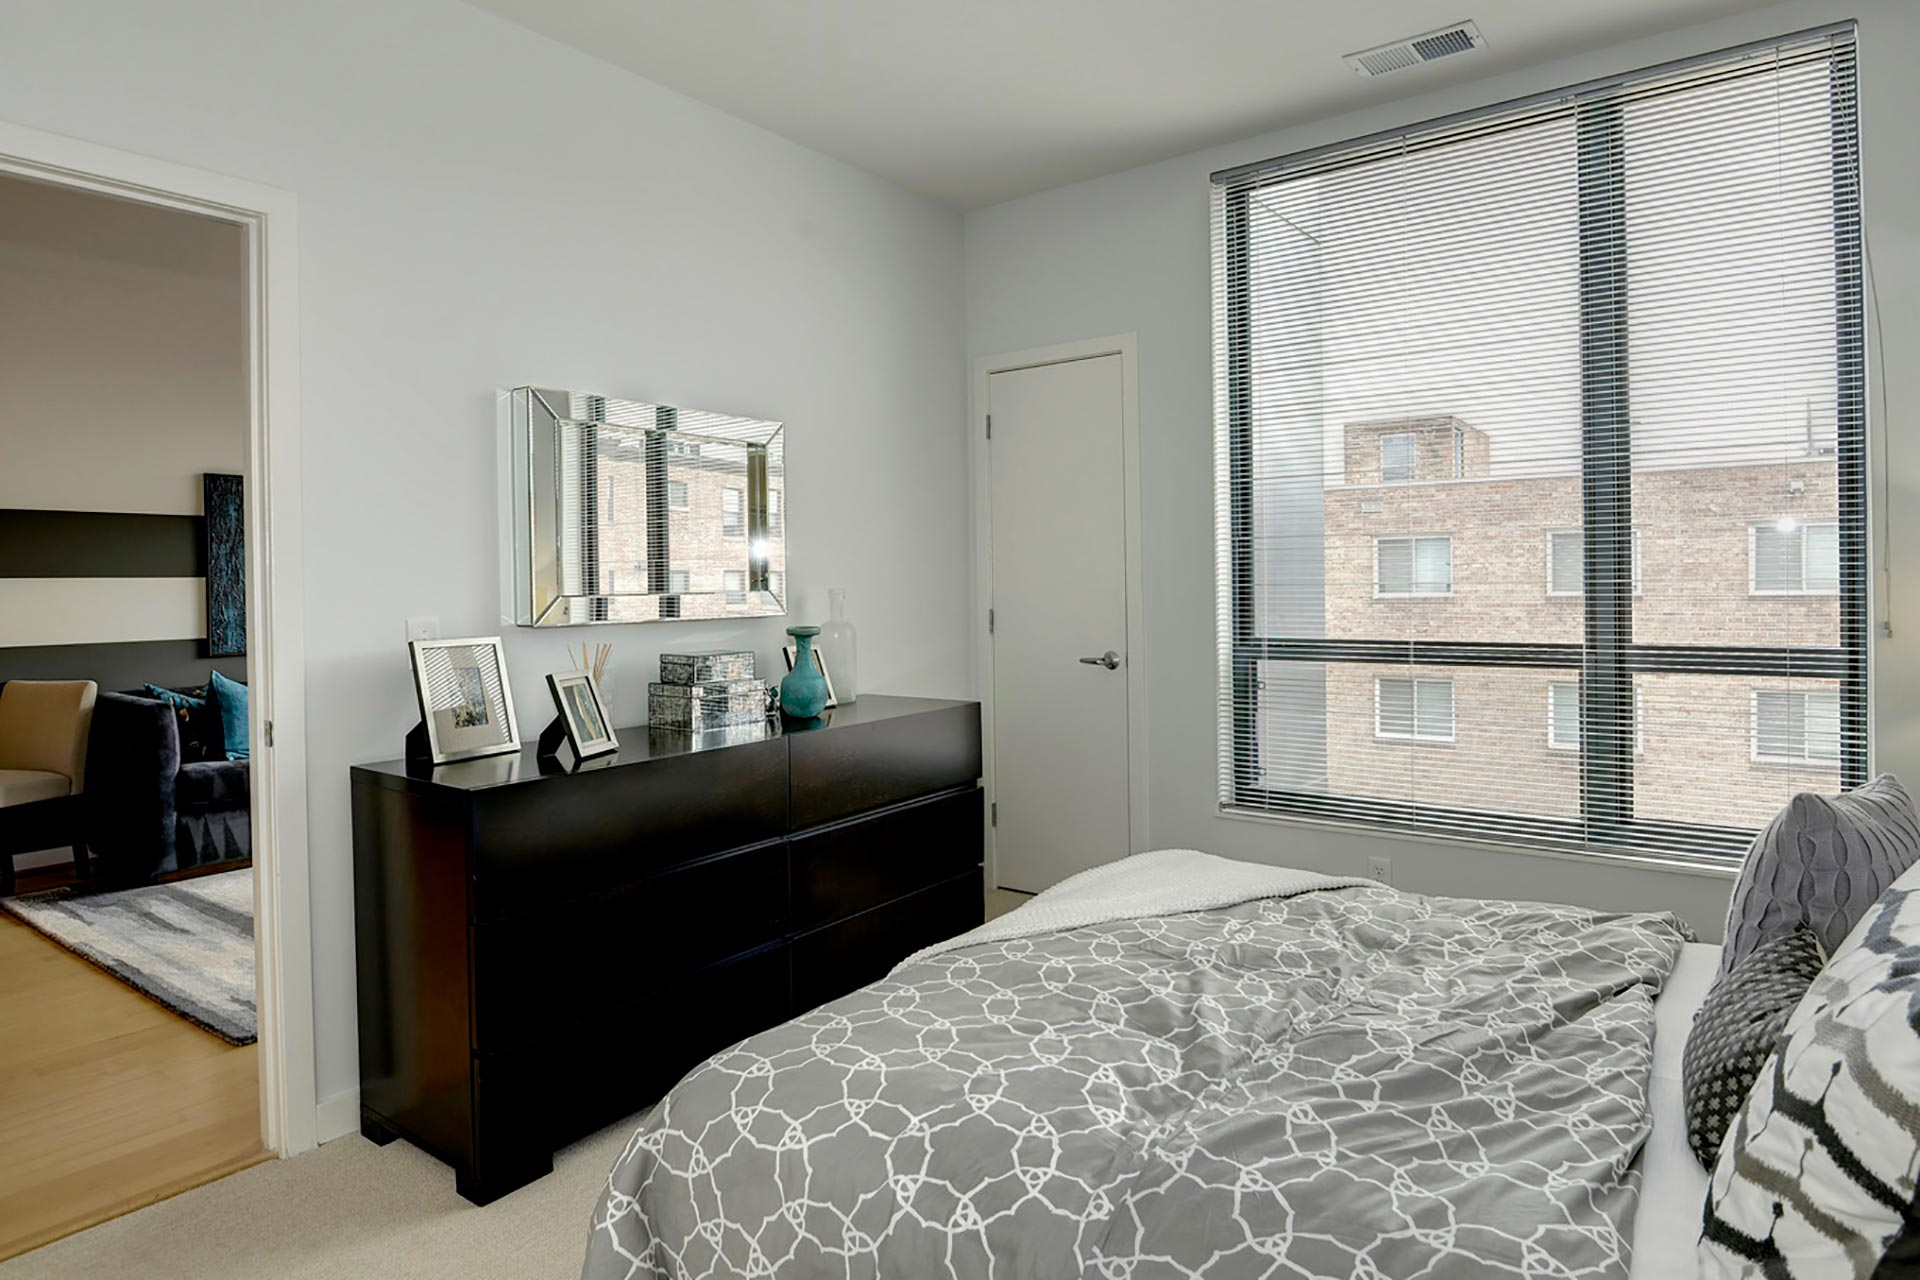 Model unit bedroom with queen bed, dresser, and large window, with door open to the living room on the far left